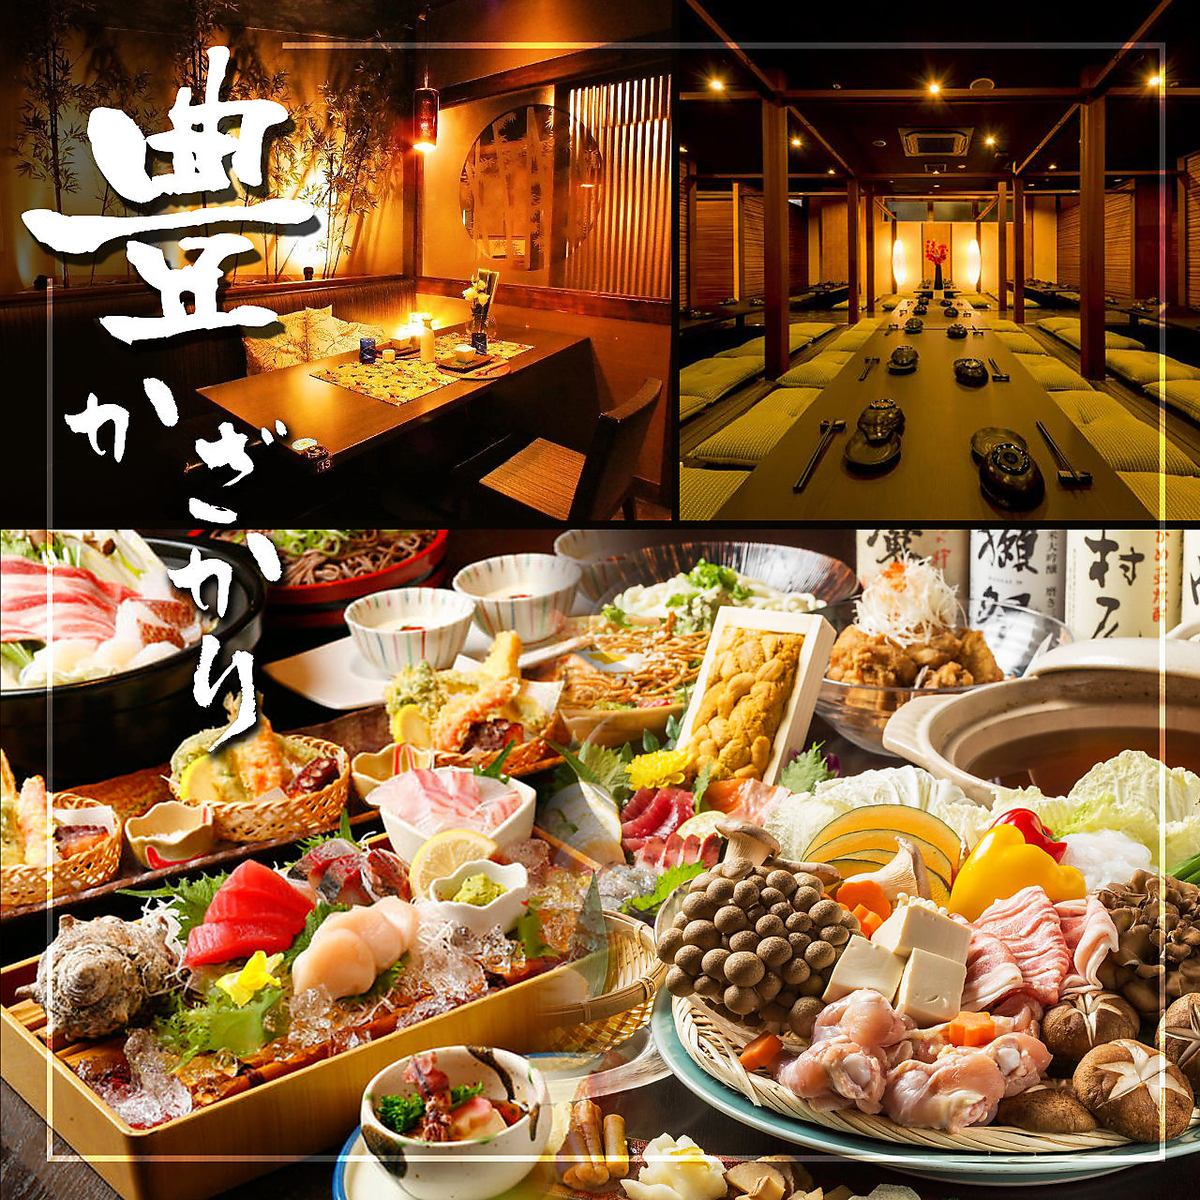 ★ Full seats full ★ «In autumn banquets» 3 hours drink unlimited banquet course 2500 yen ~